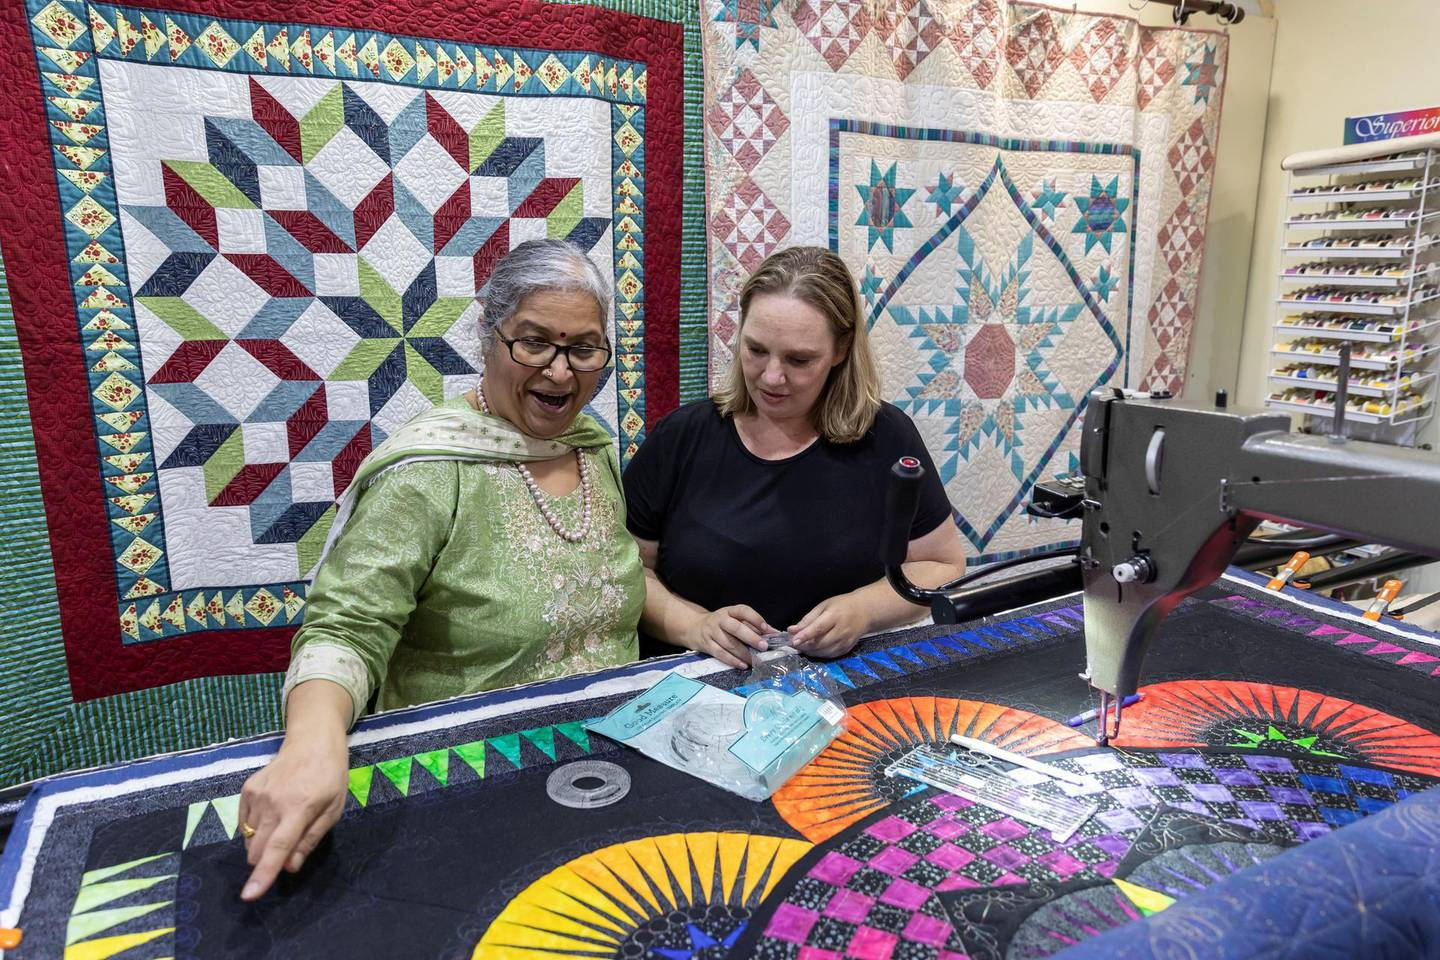 DUBAI, UNITED ARAB EMIRATES. 18 FEBRUARY 2020.  The hobby shop Classic Quilts in Jumeirah Plaza. Bronwyn Pontes and Mala Ramakrishnan. (Photo: Antonie Robertson/The National) Journalist: Janice Rodrigues. Section: Lifestyle.